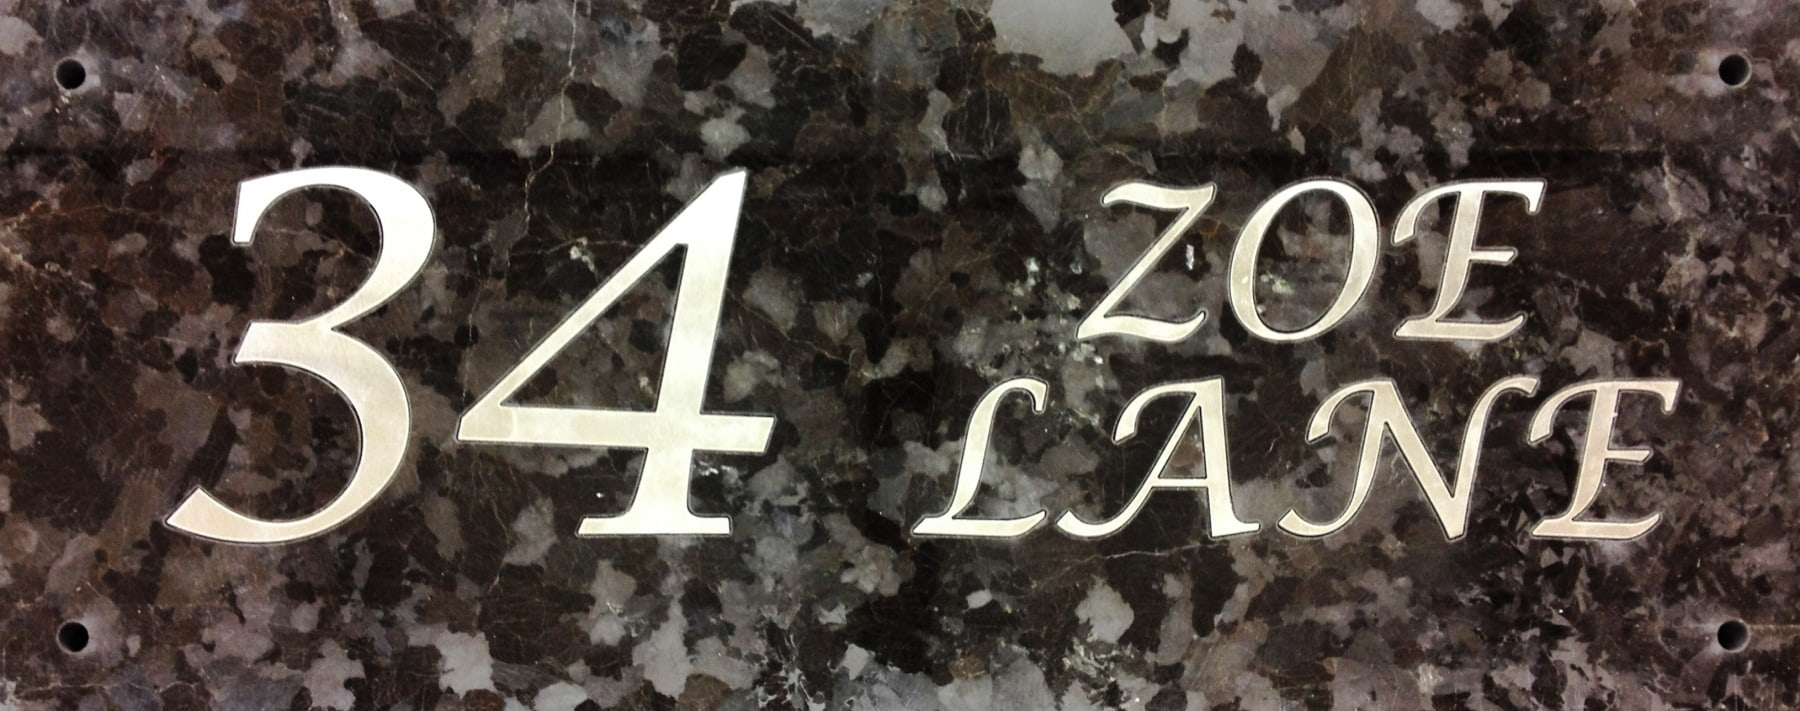 Vivid House Number | Custom Residential House Signs| 34 Zoe Lane | Brushed Aluminum Finish on a granite material